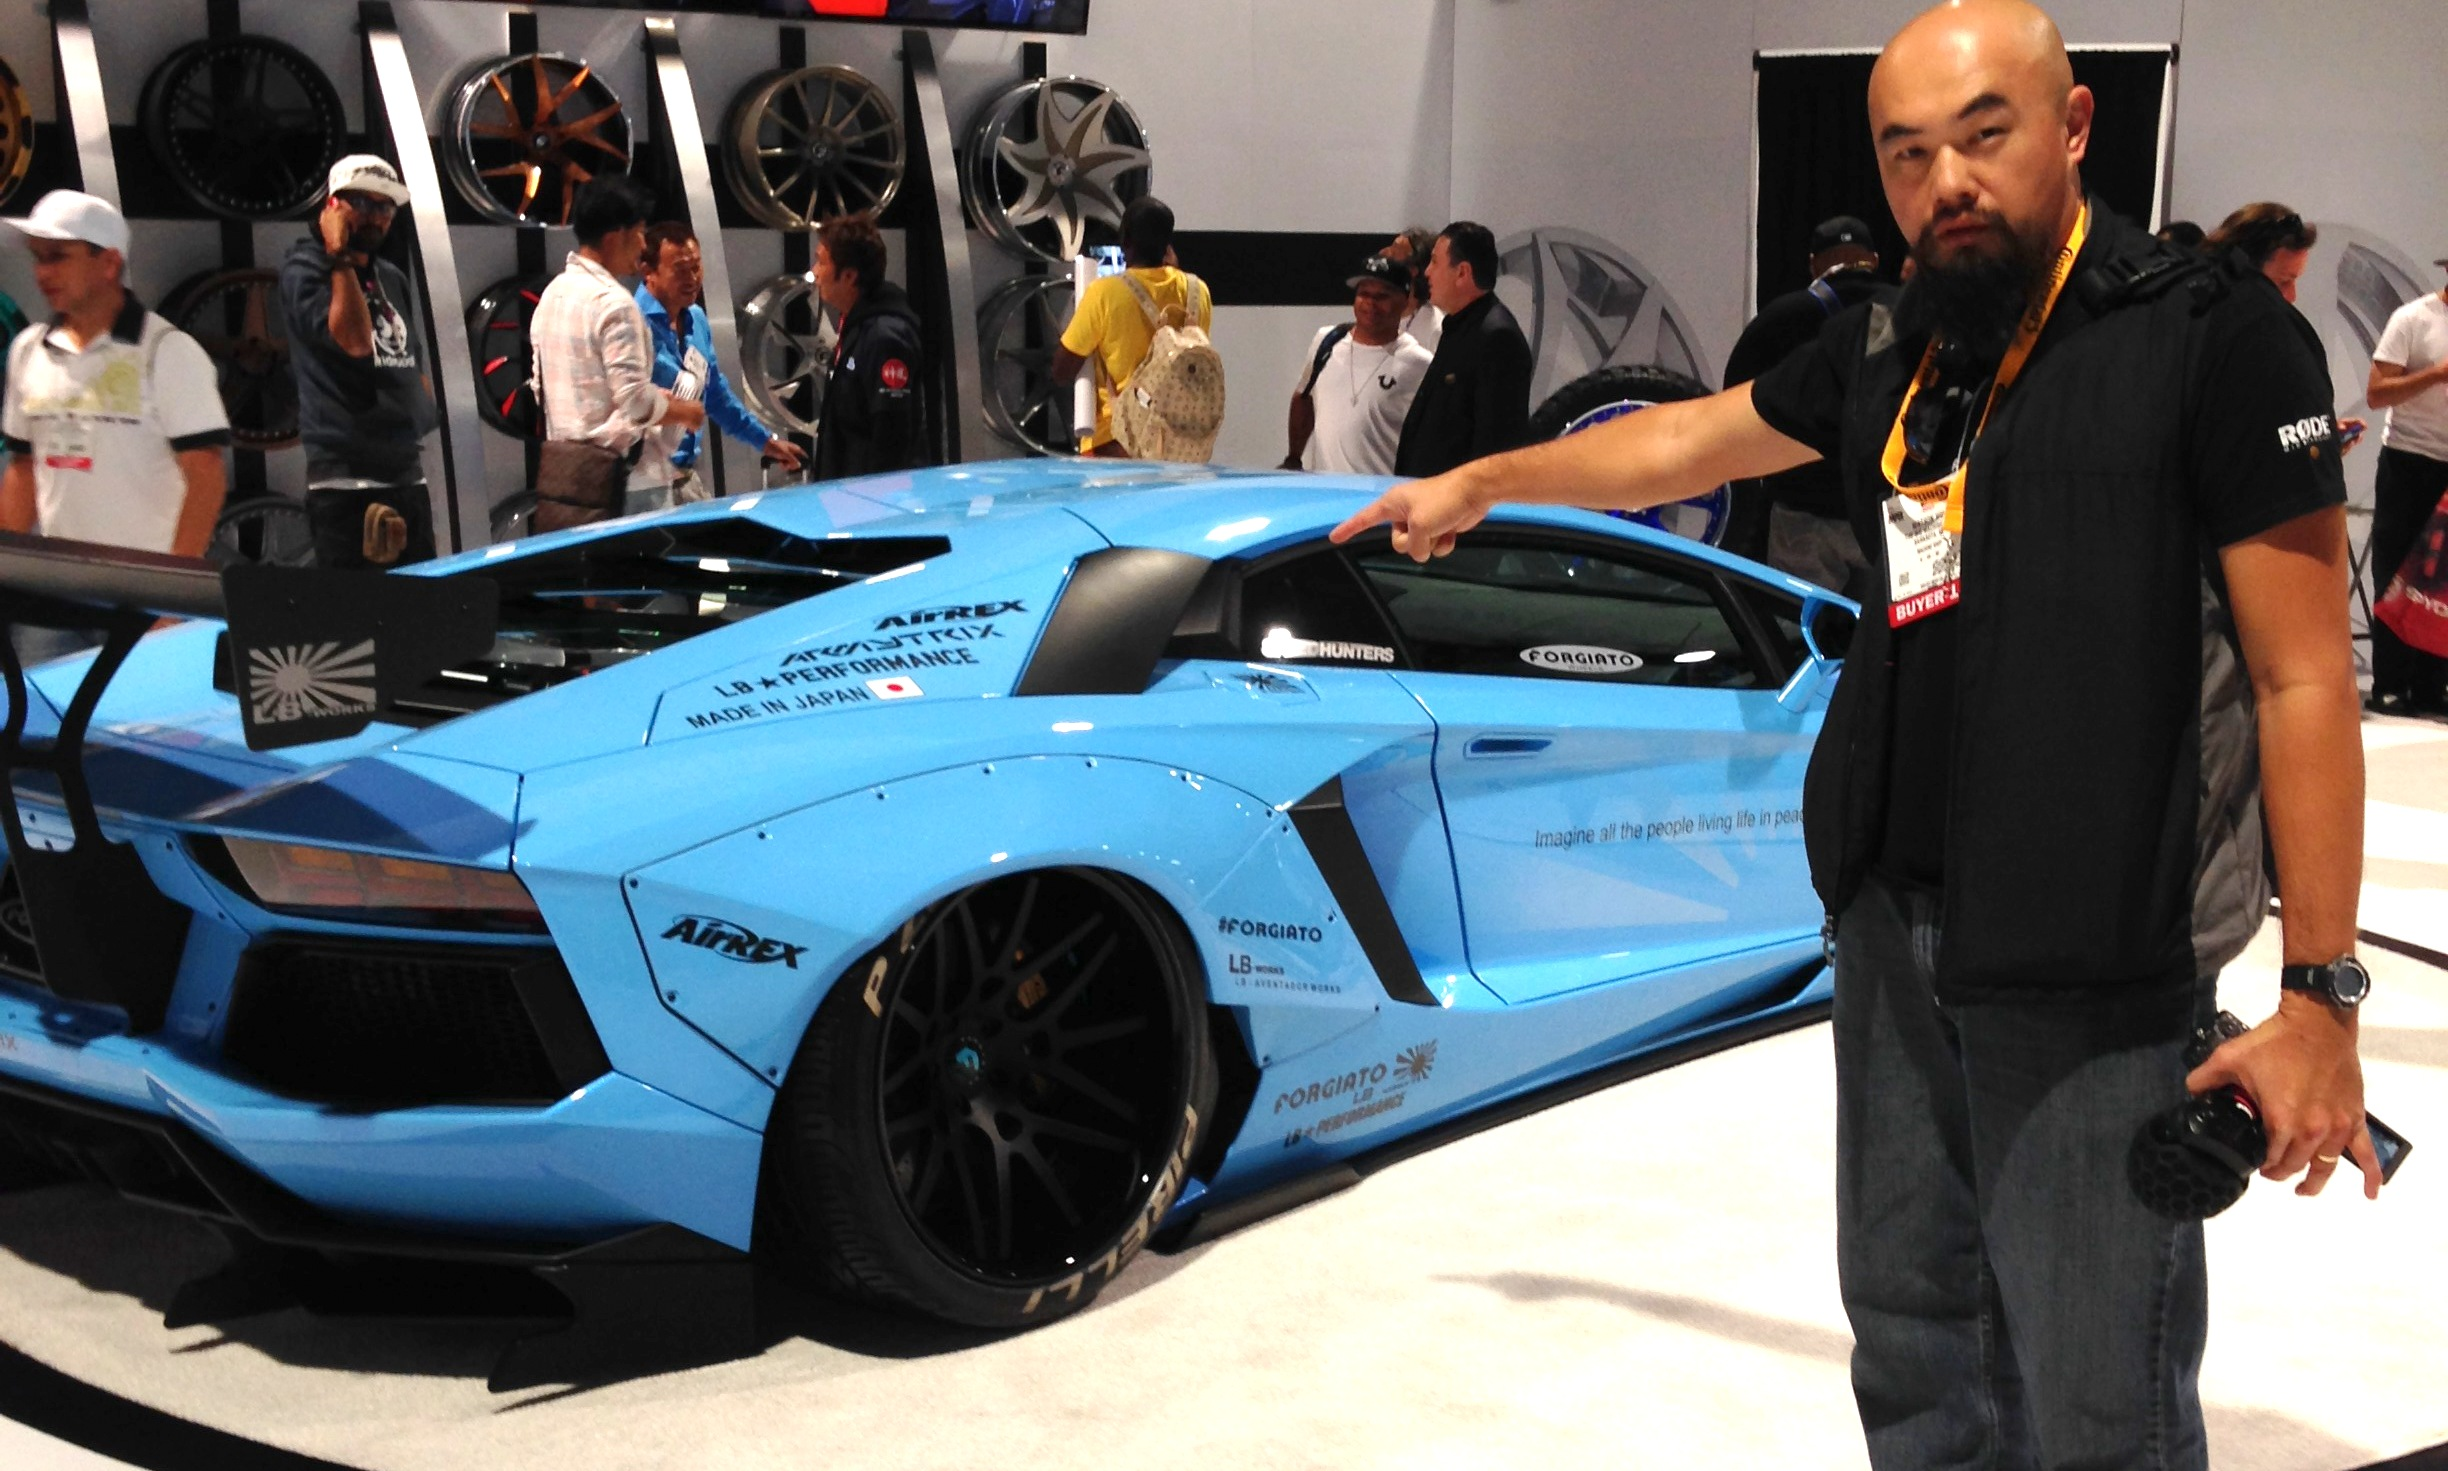 Watson Wu holding the  RØDE   SVM X mic,  posing with a Liberty Walk Lamborghini at the SEMA Show.